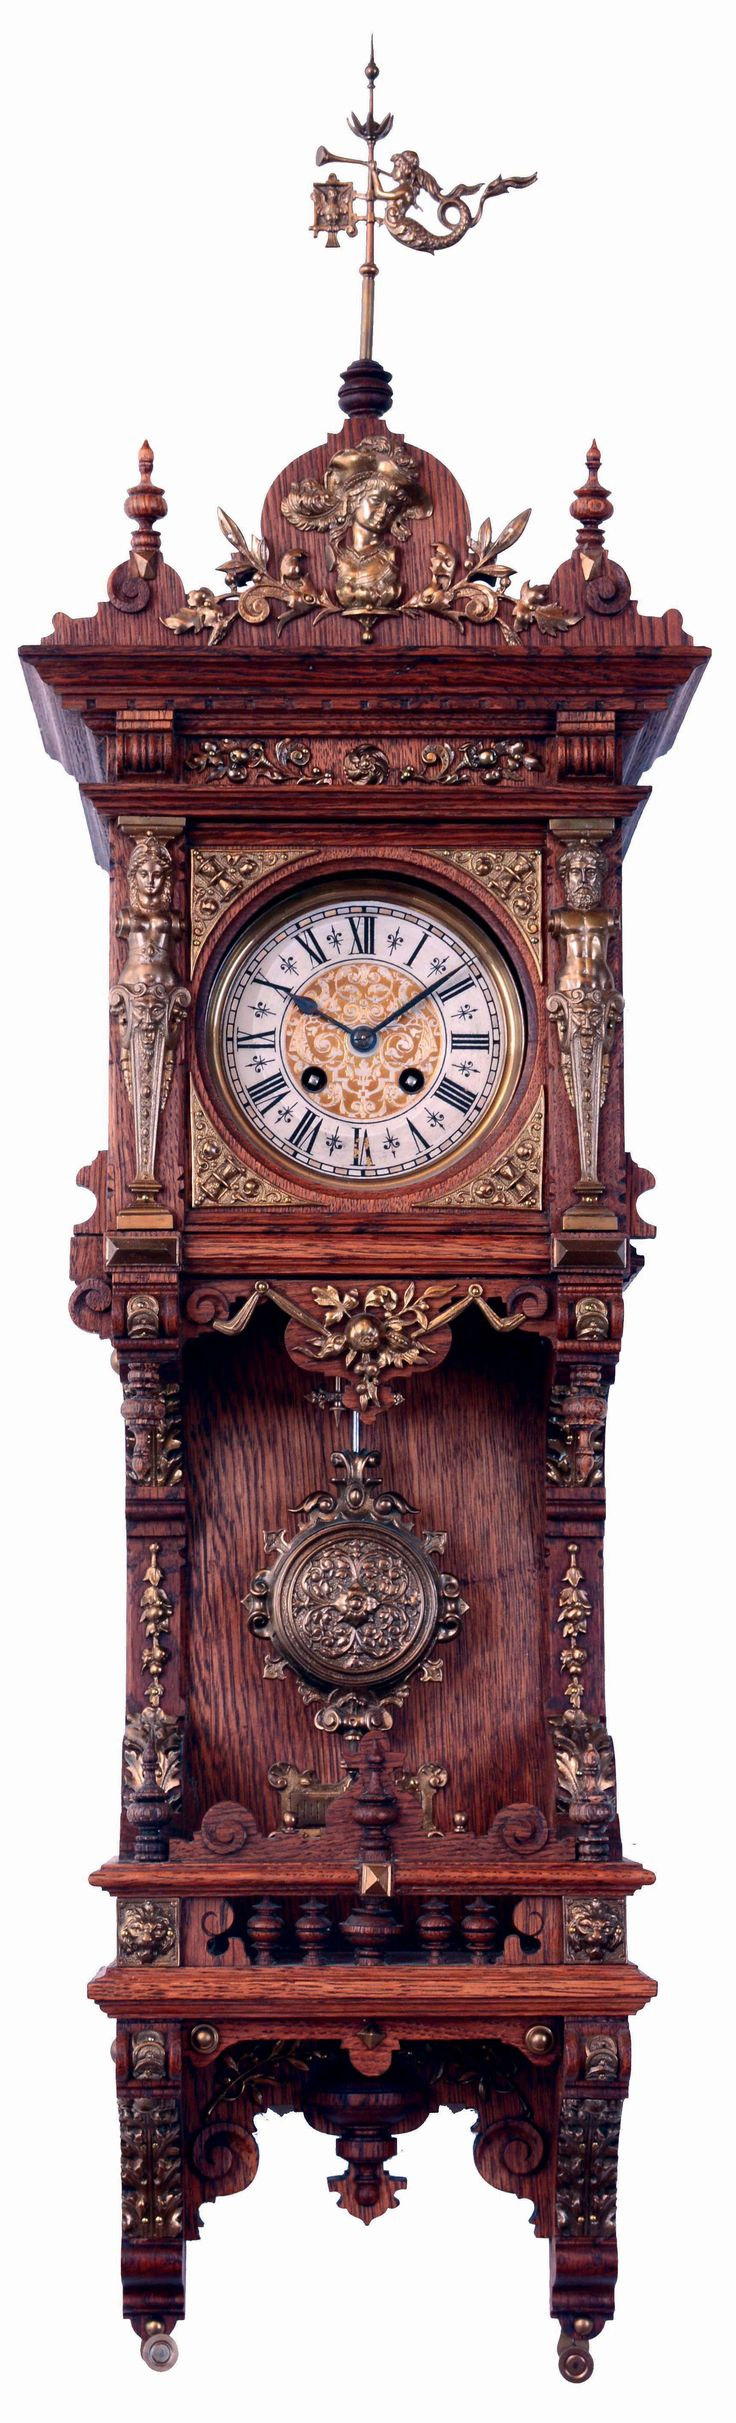 907 Best Images About Clocks Tick Tock On Pinterest